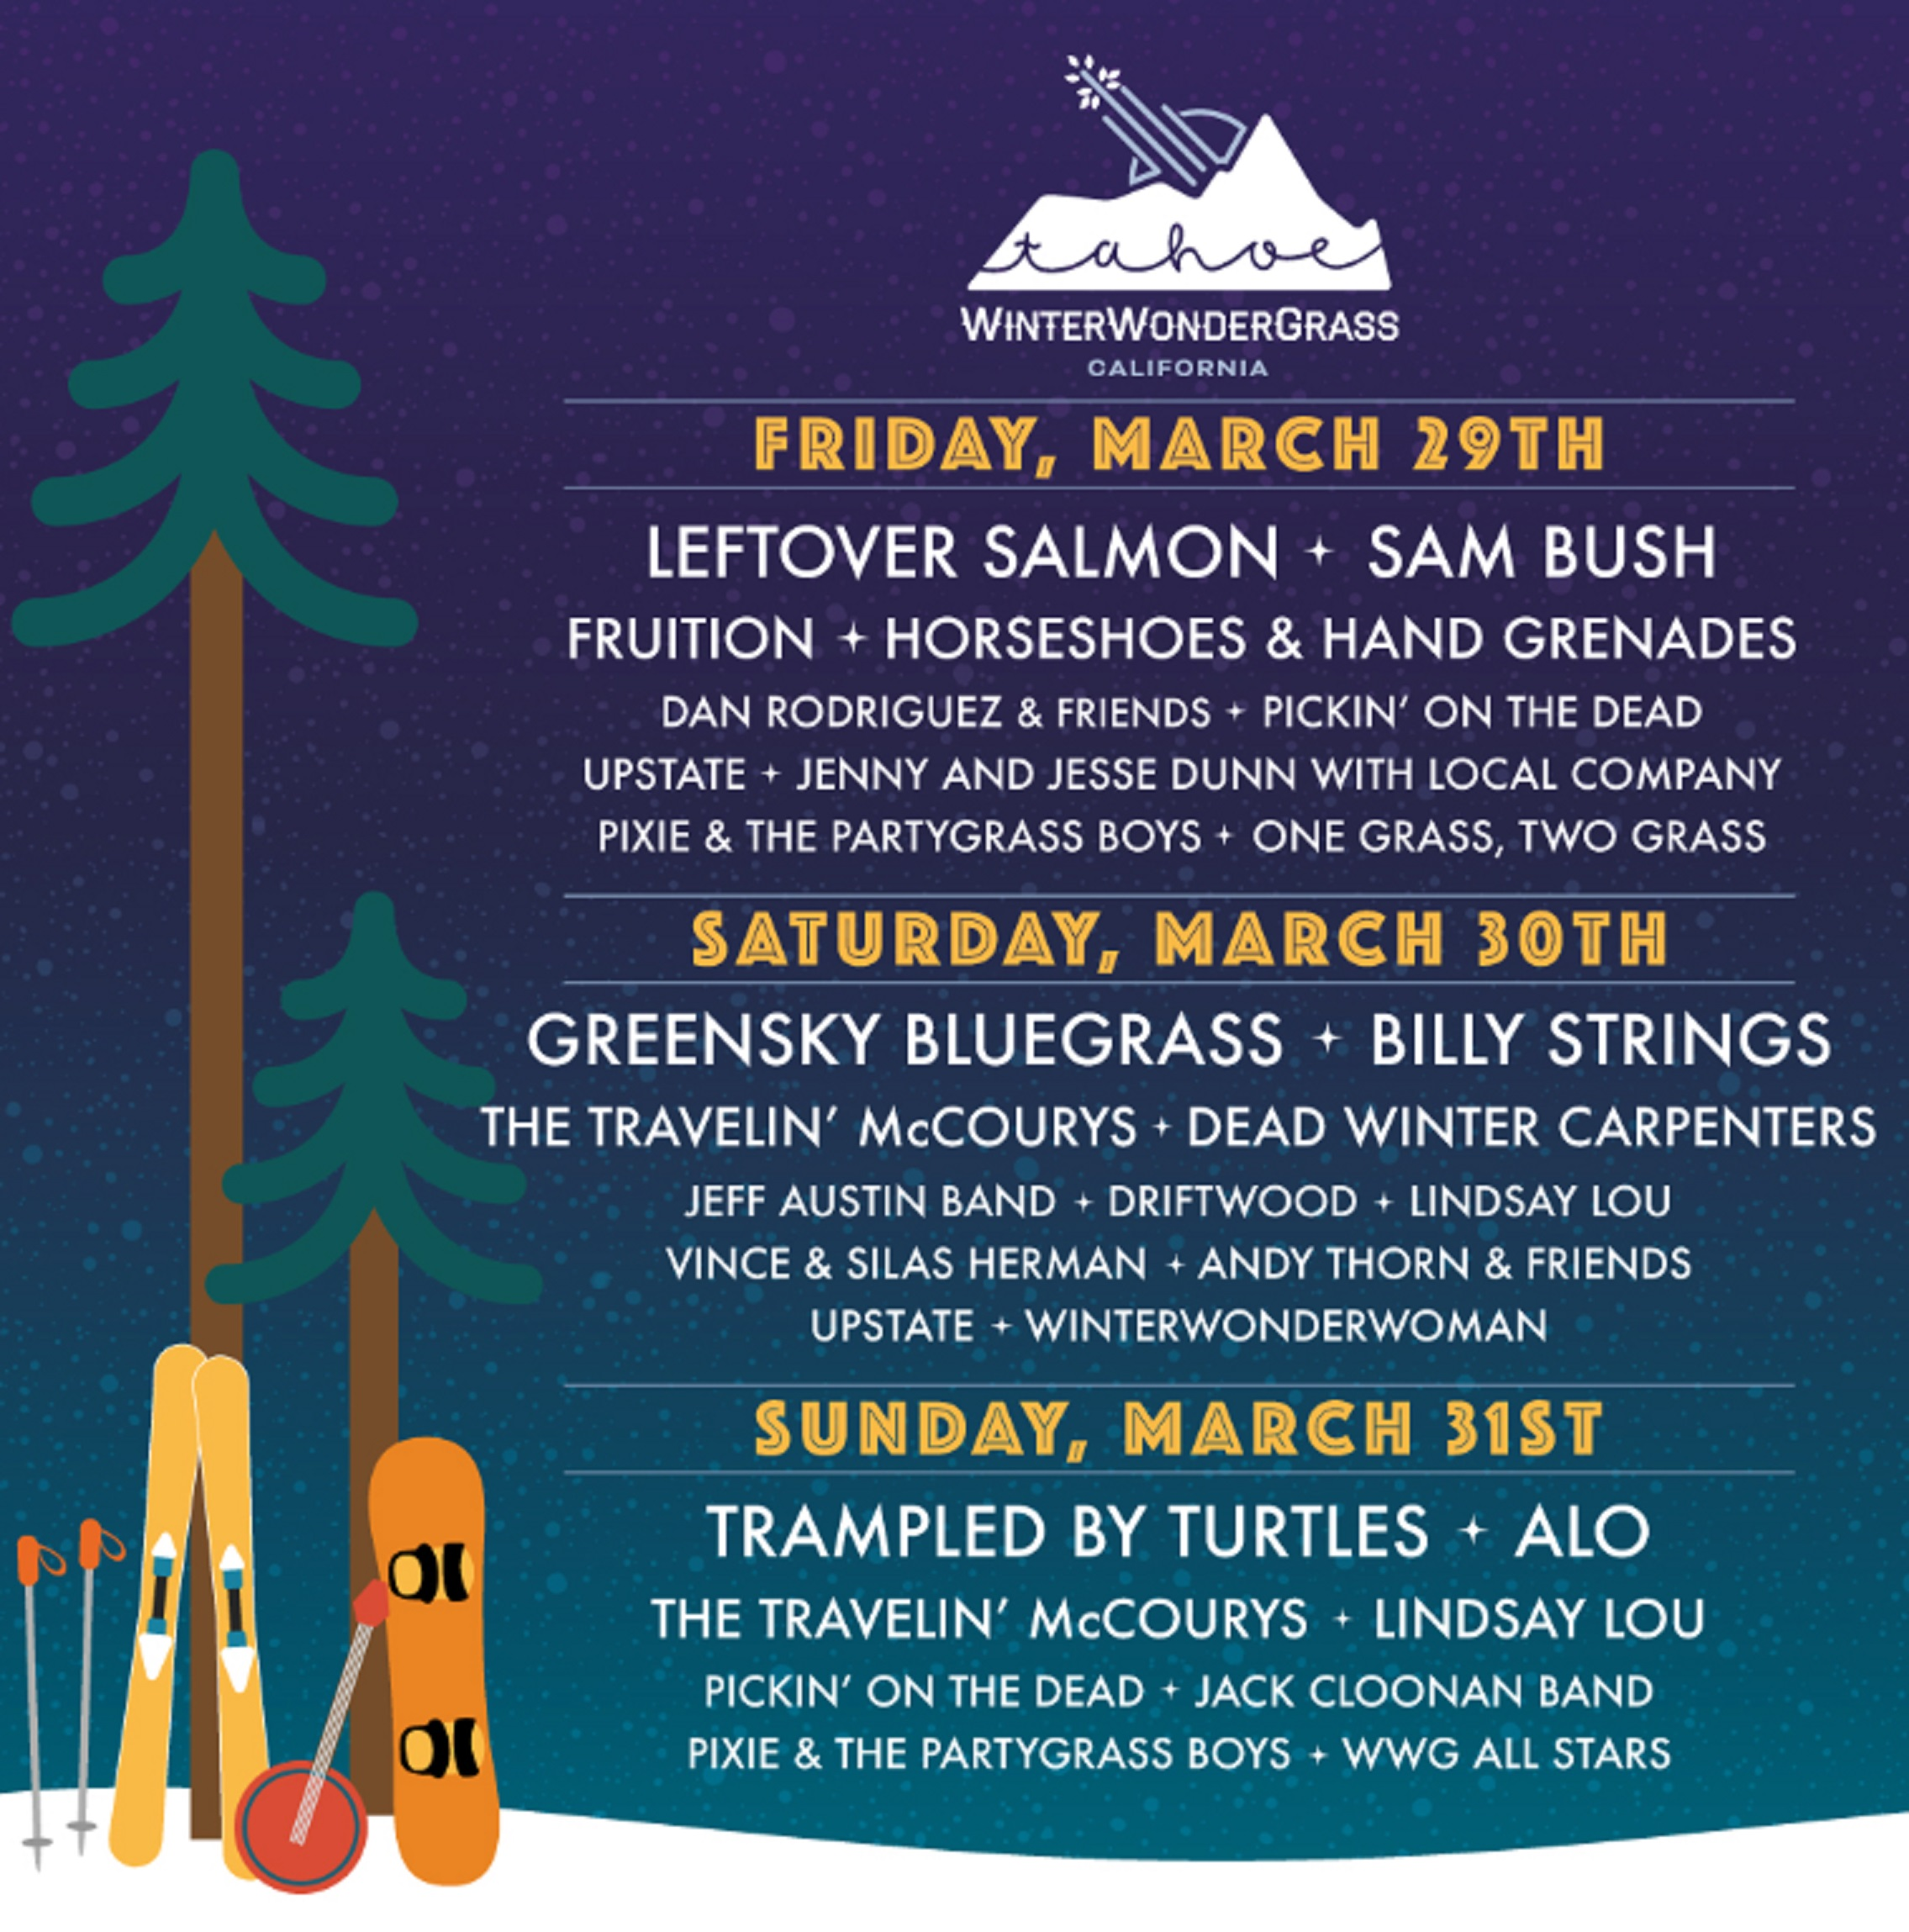 WinterWonderGrass Tahoe is THREE WEEKS Away